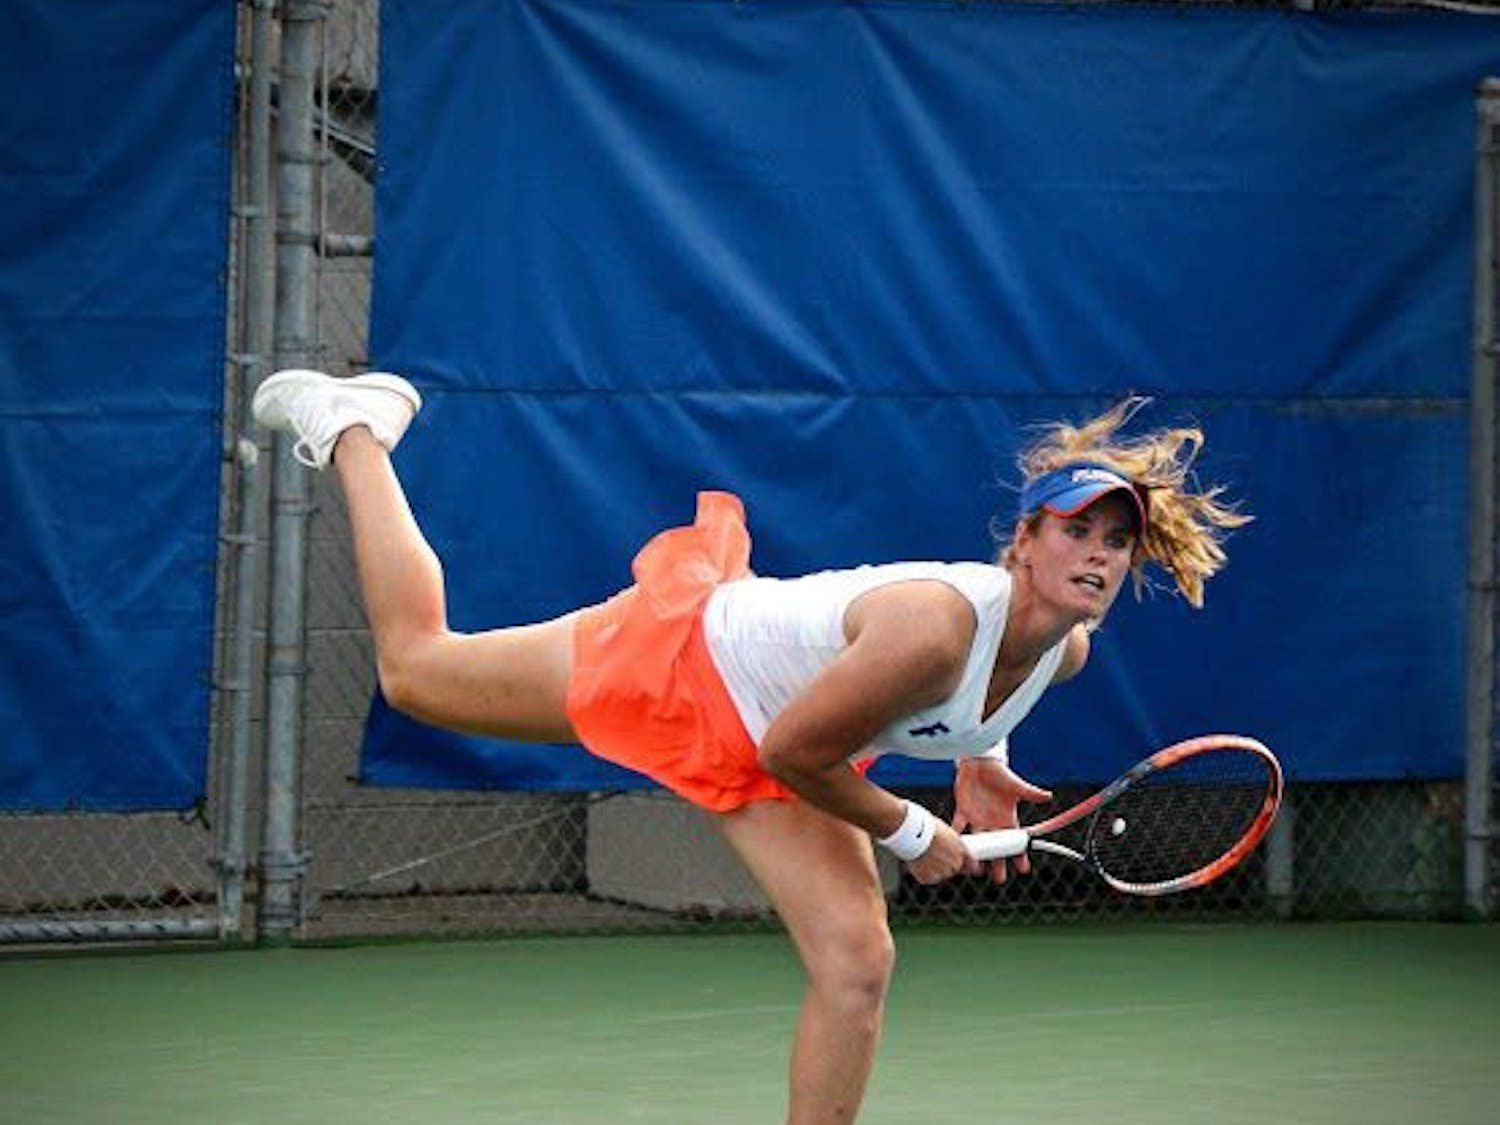 UF's Belinda Woolcock hits a serve during Florida's 4-2 win against Oklahoma State on Feb. 18, 2017, at the Ring Tennis Complex.